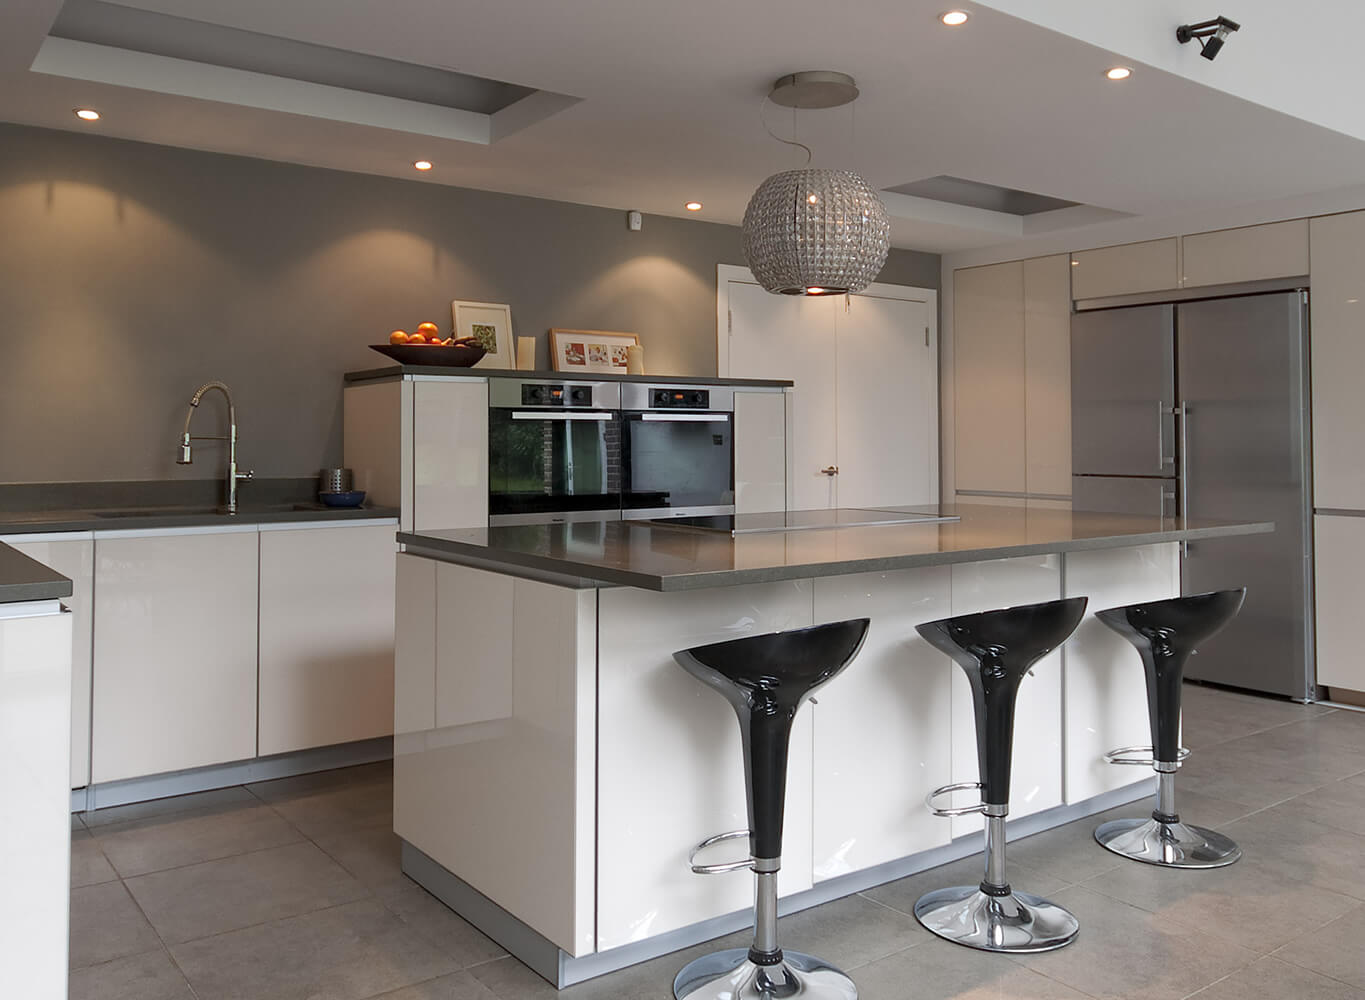 Oxshott - Kitchen renovation